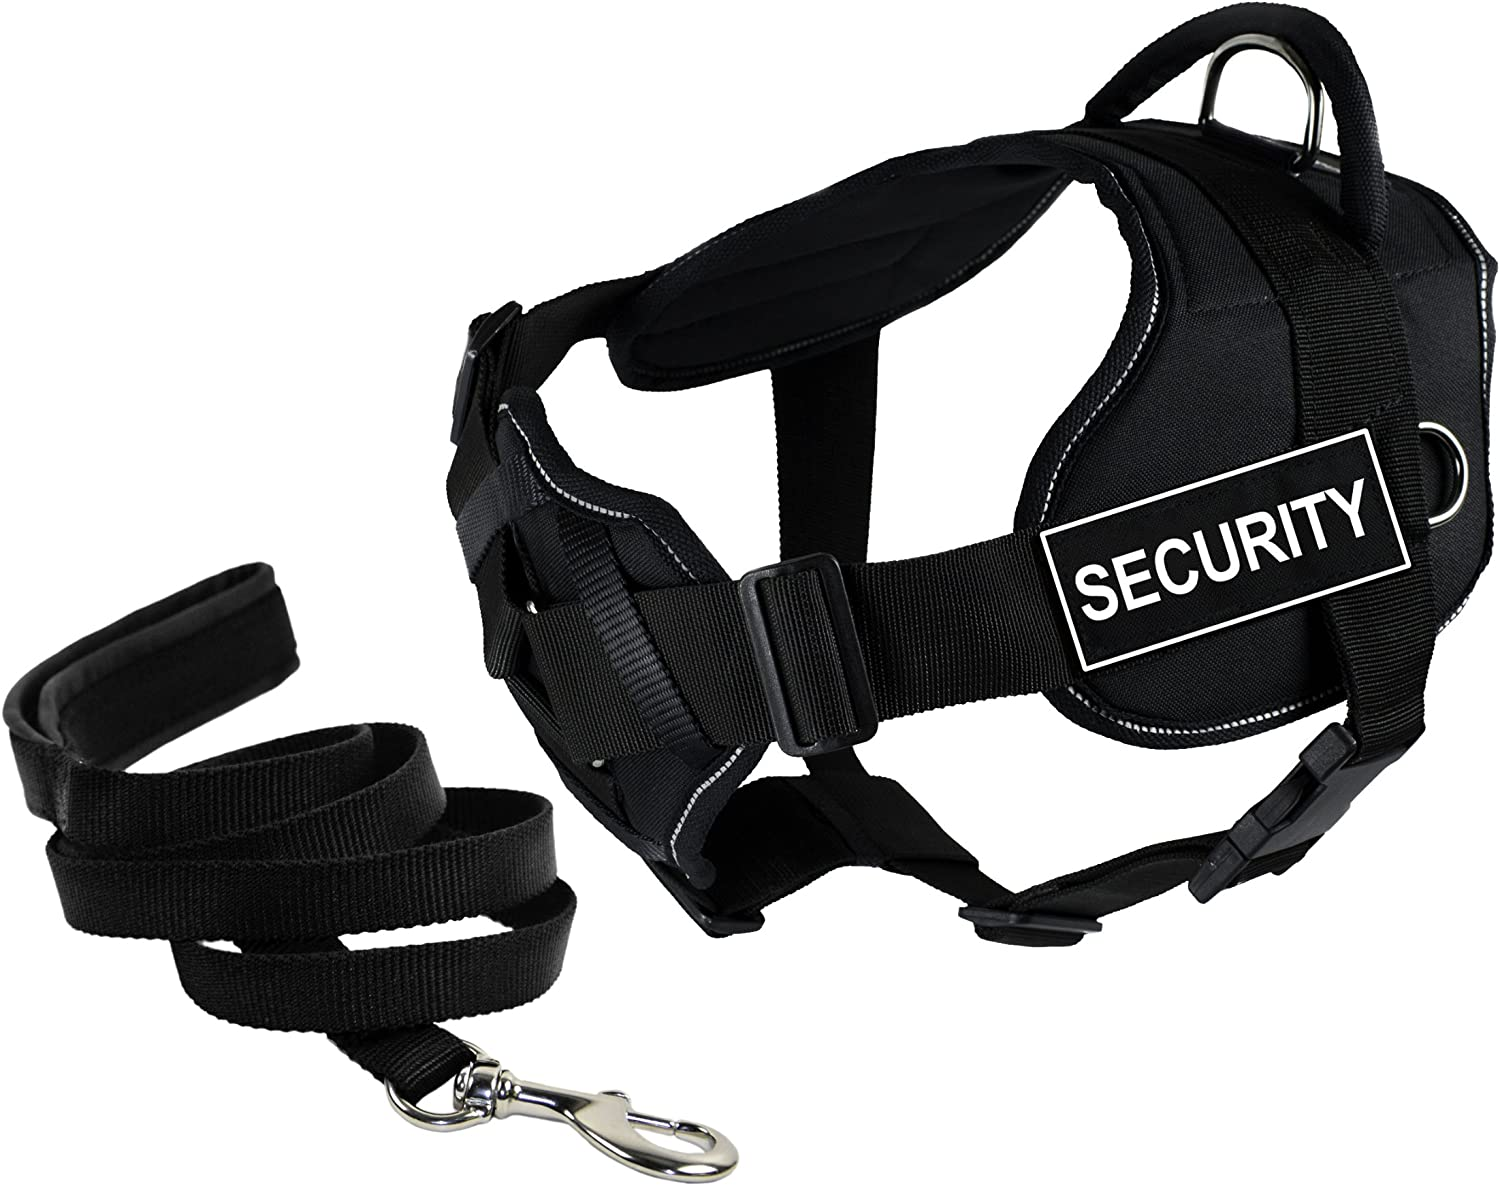 Dean & Tyler's DT Fun Chest Support  SECURITY  Harness with Reflective Trim, Large, and 6 ft Padded Puppy Leash.